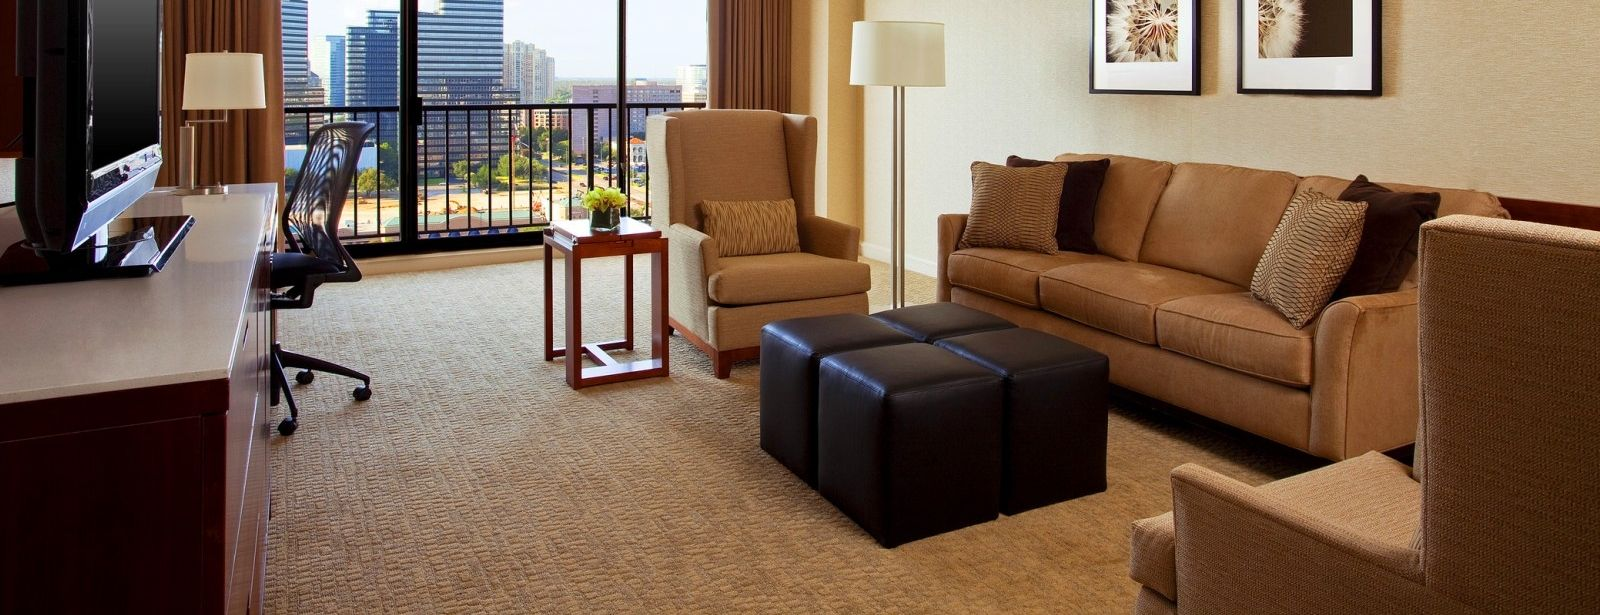 Hotel Suites in Houston Regency Suites - The Westin Oaks Houston at the Galleria